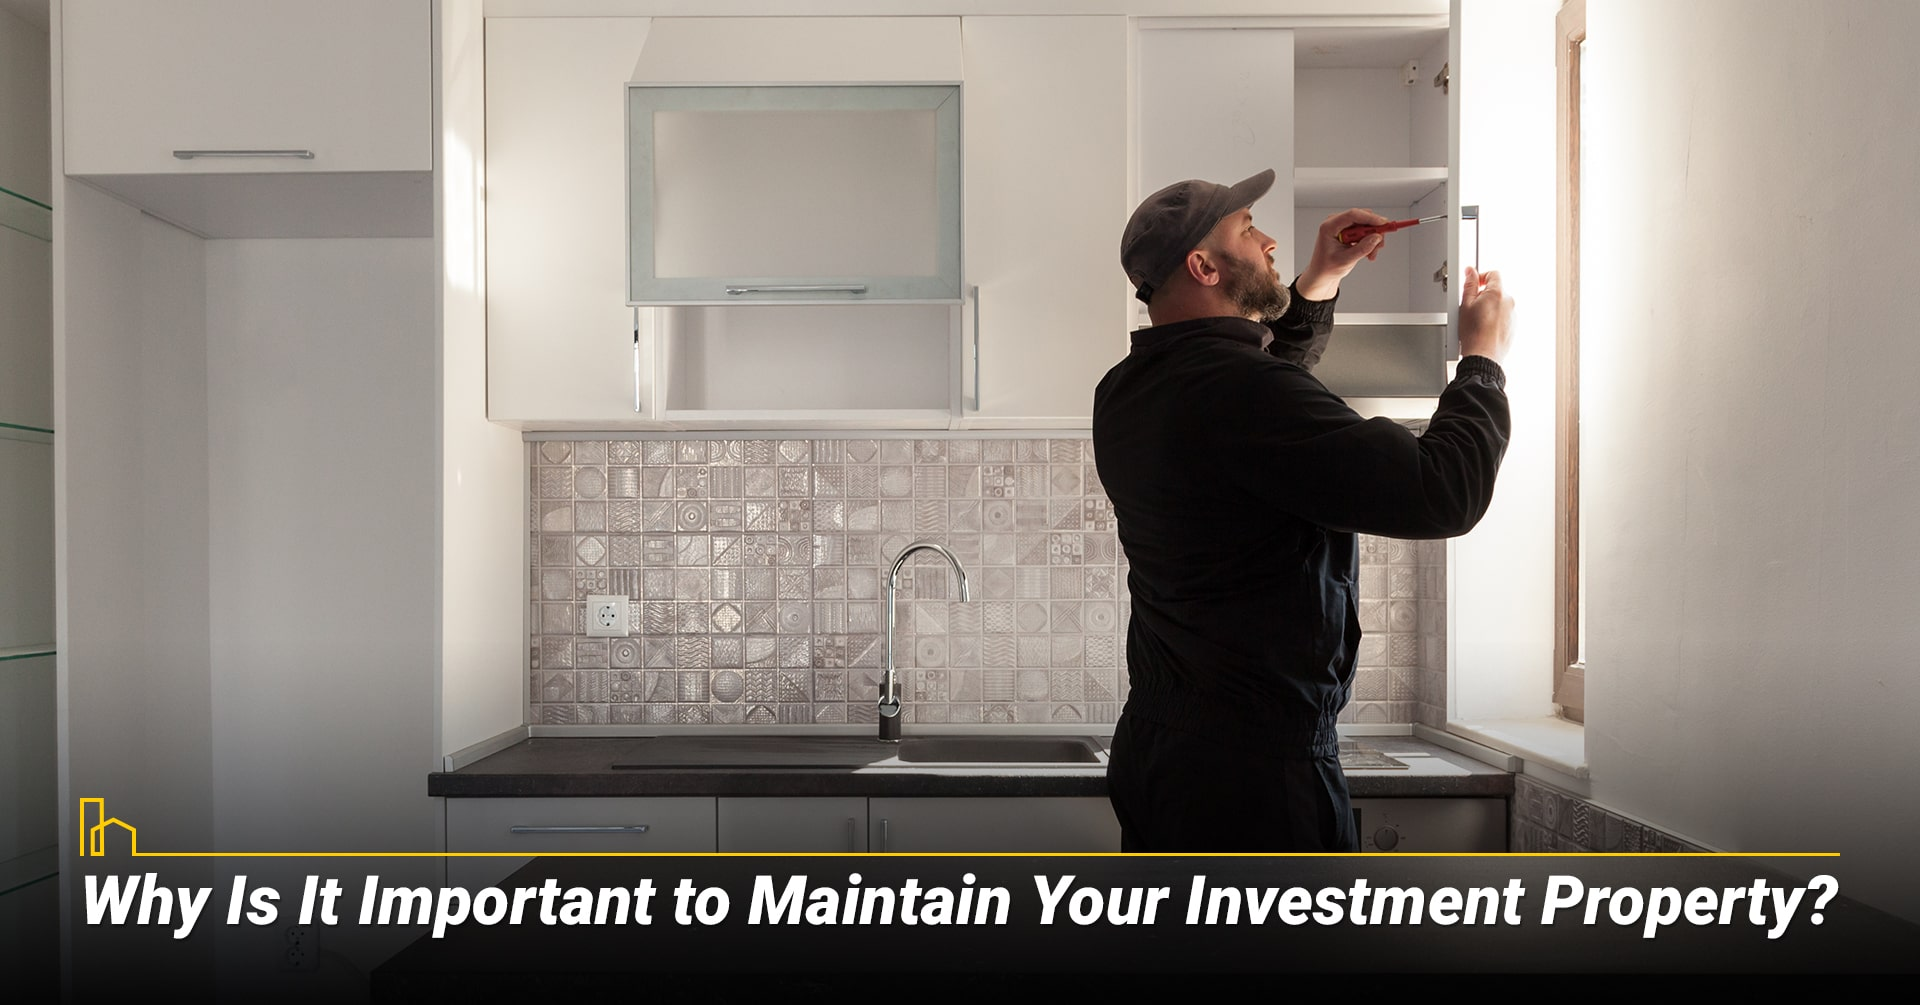 Why Is It Important to Maintain Your Investment Property? Reasons to maintain your investment property